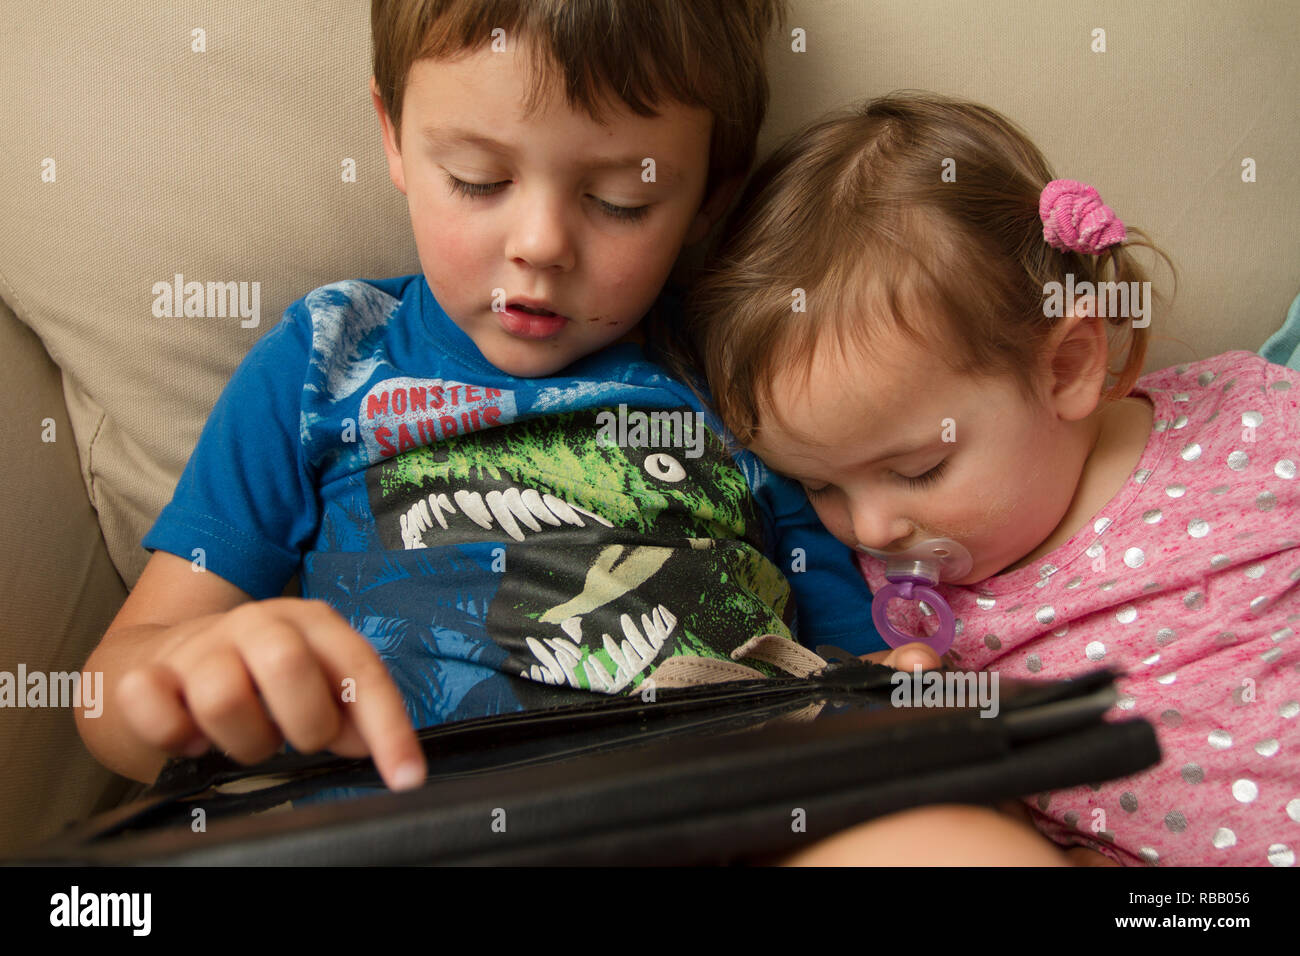 Little boy plays on iPad while his little sister is sleeping next to him - Stock Image